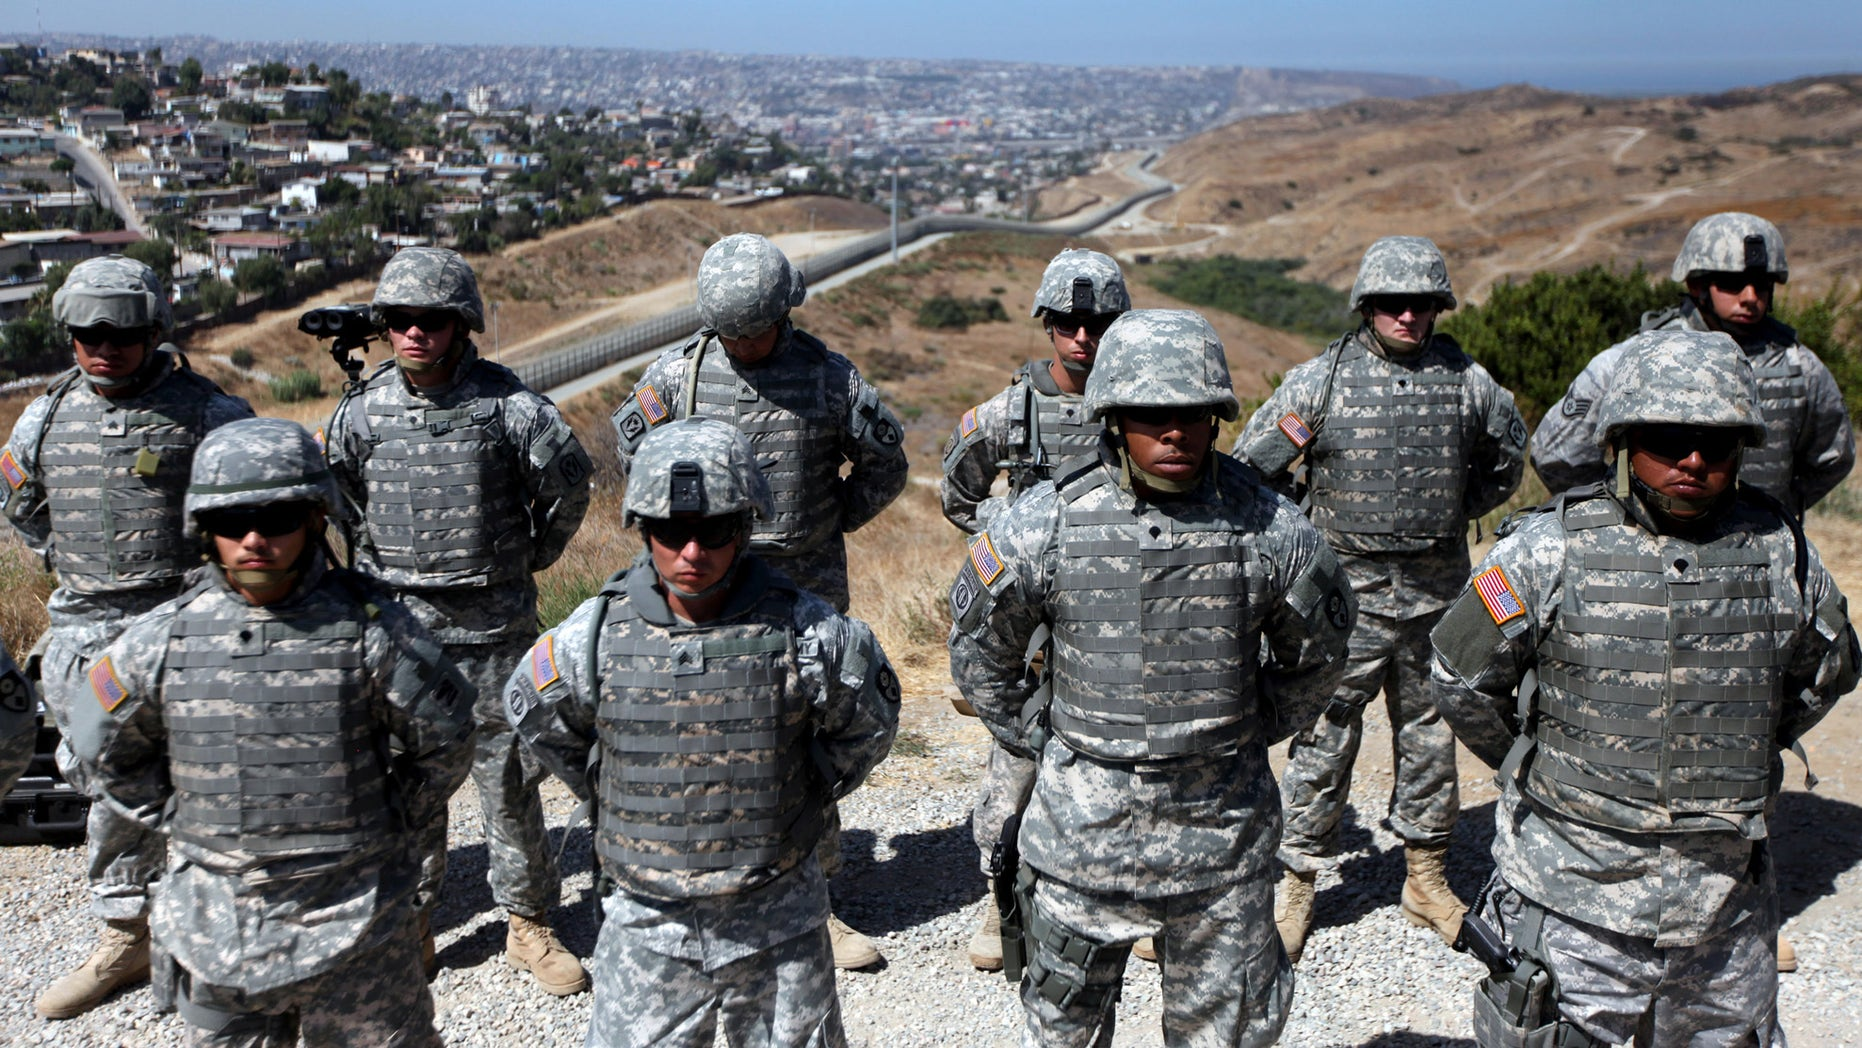 SAN YSIDRO, CA - AUGUST 18:  National Guardsmen stand in formation along the U.S.-Mexico border during a visit by California Gov. Arnold Schwarzenegger August 18, 2010 in San Ysidro, California.  U.S. President Barack Obama has ordered more than a thousand National Guard troops to the border in response to border patrol agents who are overwhelmed by drug smugglers and illegal immigrants.  (Photo by Sandy Huffaker/Getty Images)